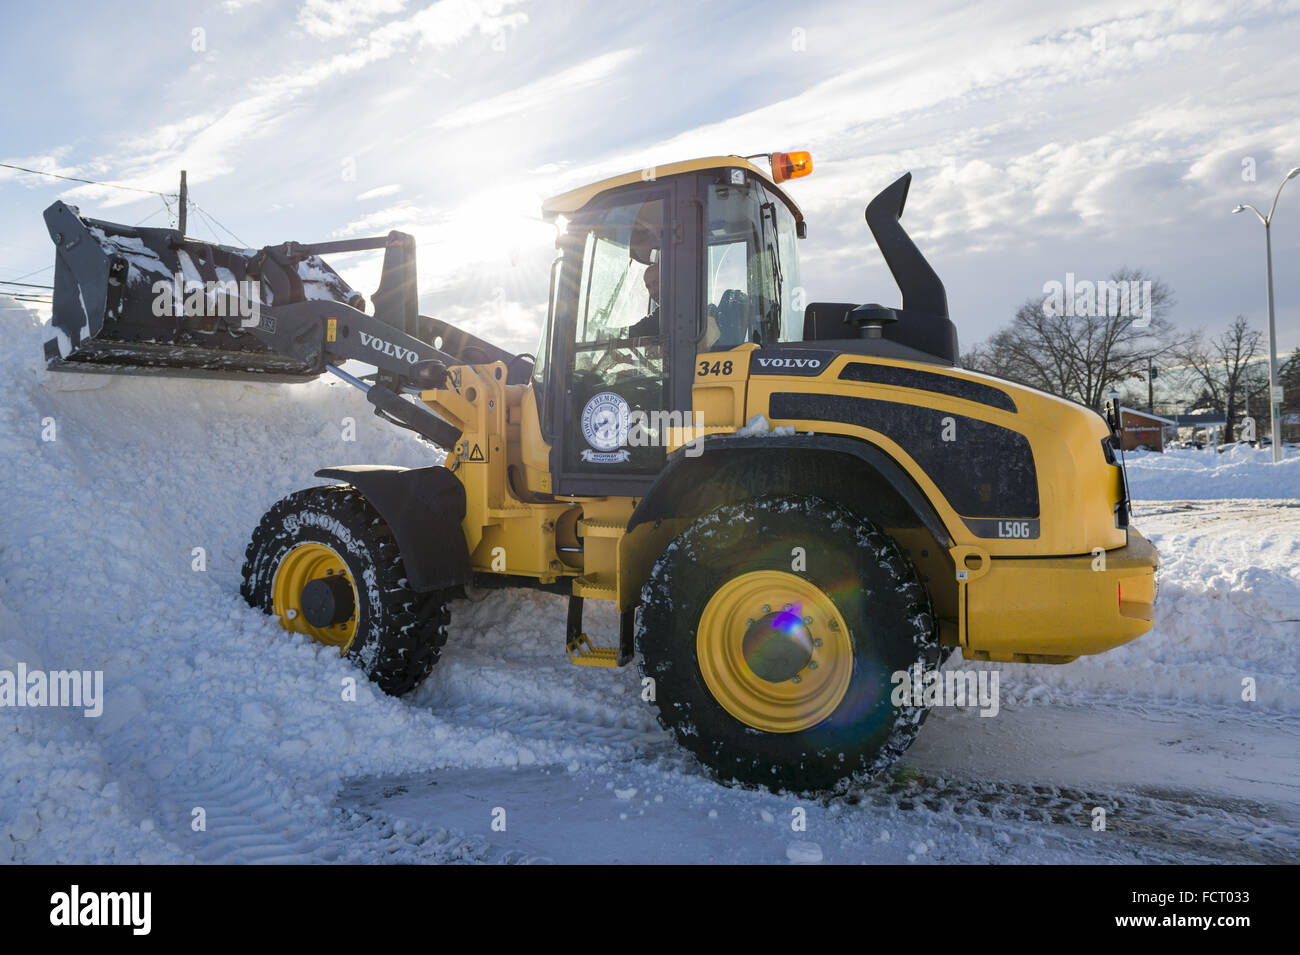 Merrick, New York, USA. 24th Jan, 2016. After Nor'easter drops more than two feet of snow on south shore of - Stock Image